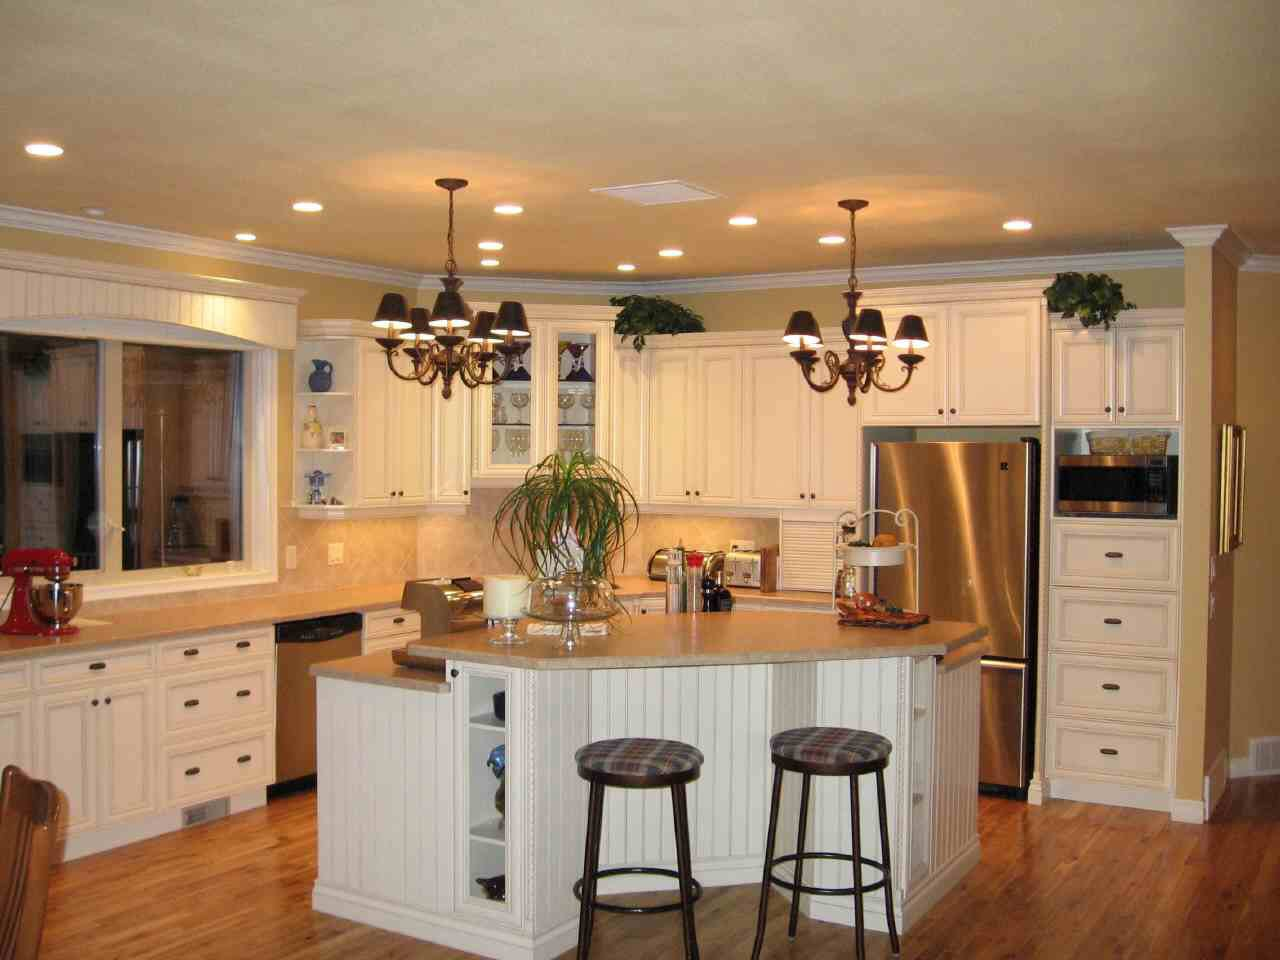 Stunning Kitchen Island Design Ideas for Small Kitchens 1280 x 960 · 109 kB · jpeg